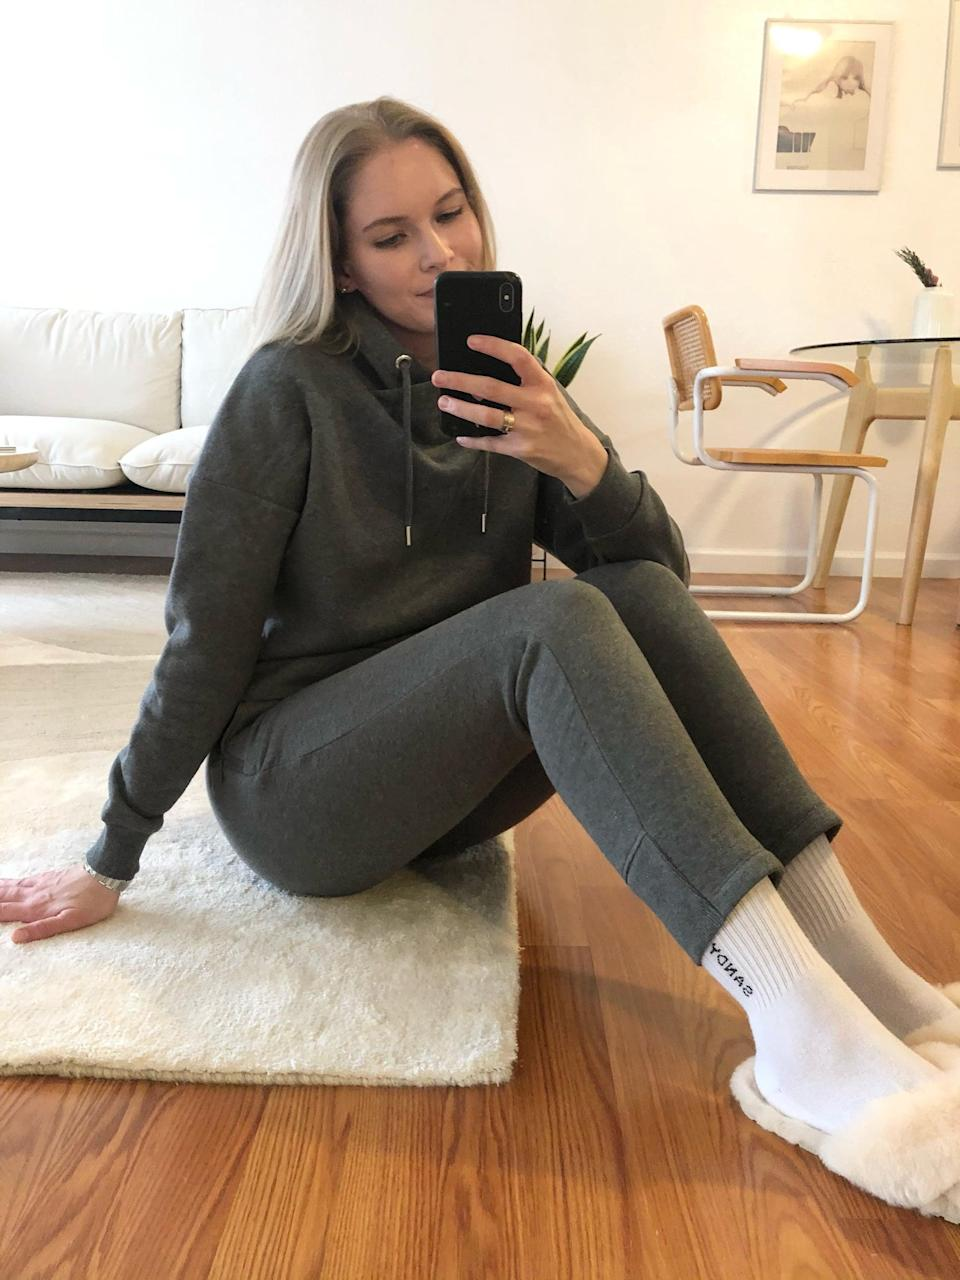 <p>The <span>Banana Republic Funnel-Neck Sweatshirt</span> ($55) and matching <span>Cozy Fleece Commuter Joggers</span> ($70) set is my favorite new thing to wear around the house or while working from home.</p>